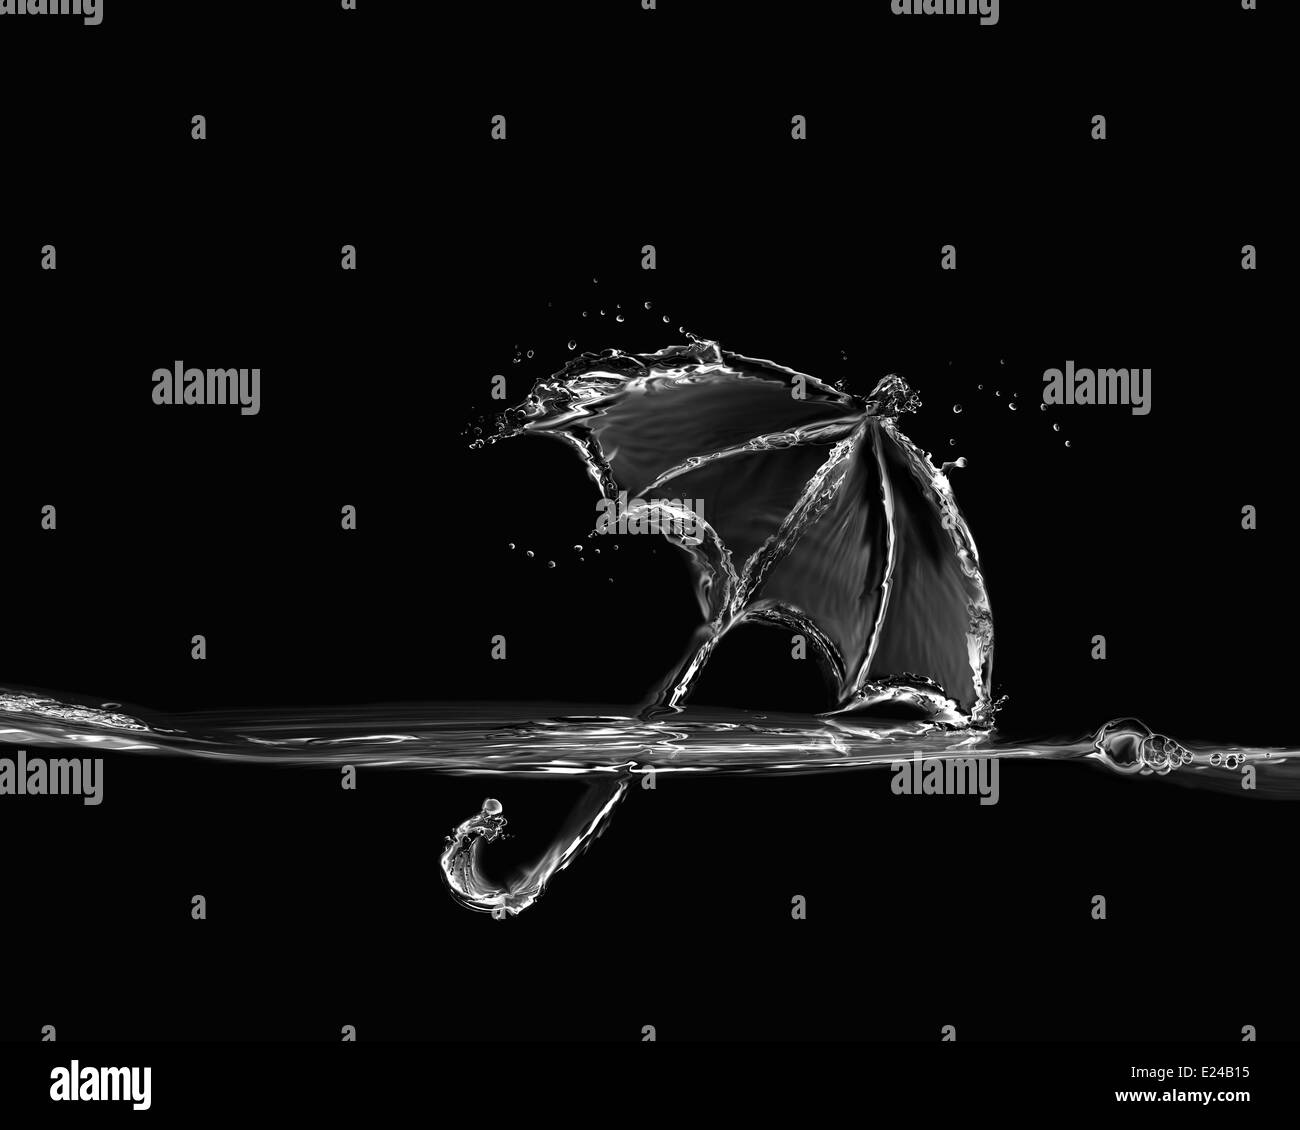 A black and white umbrella made of water and floating on water. - Stock Image